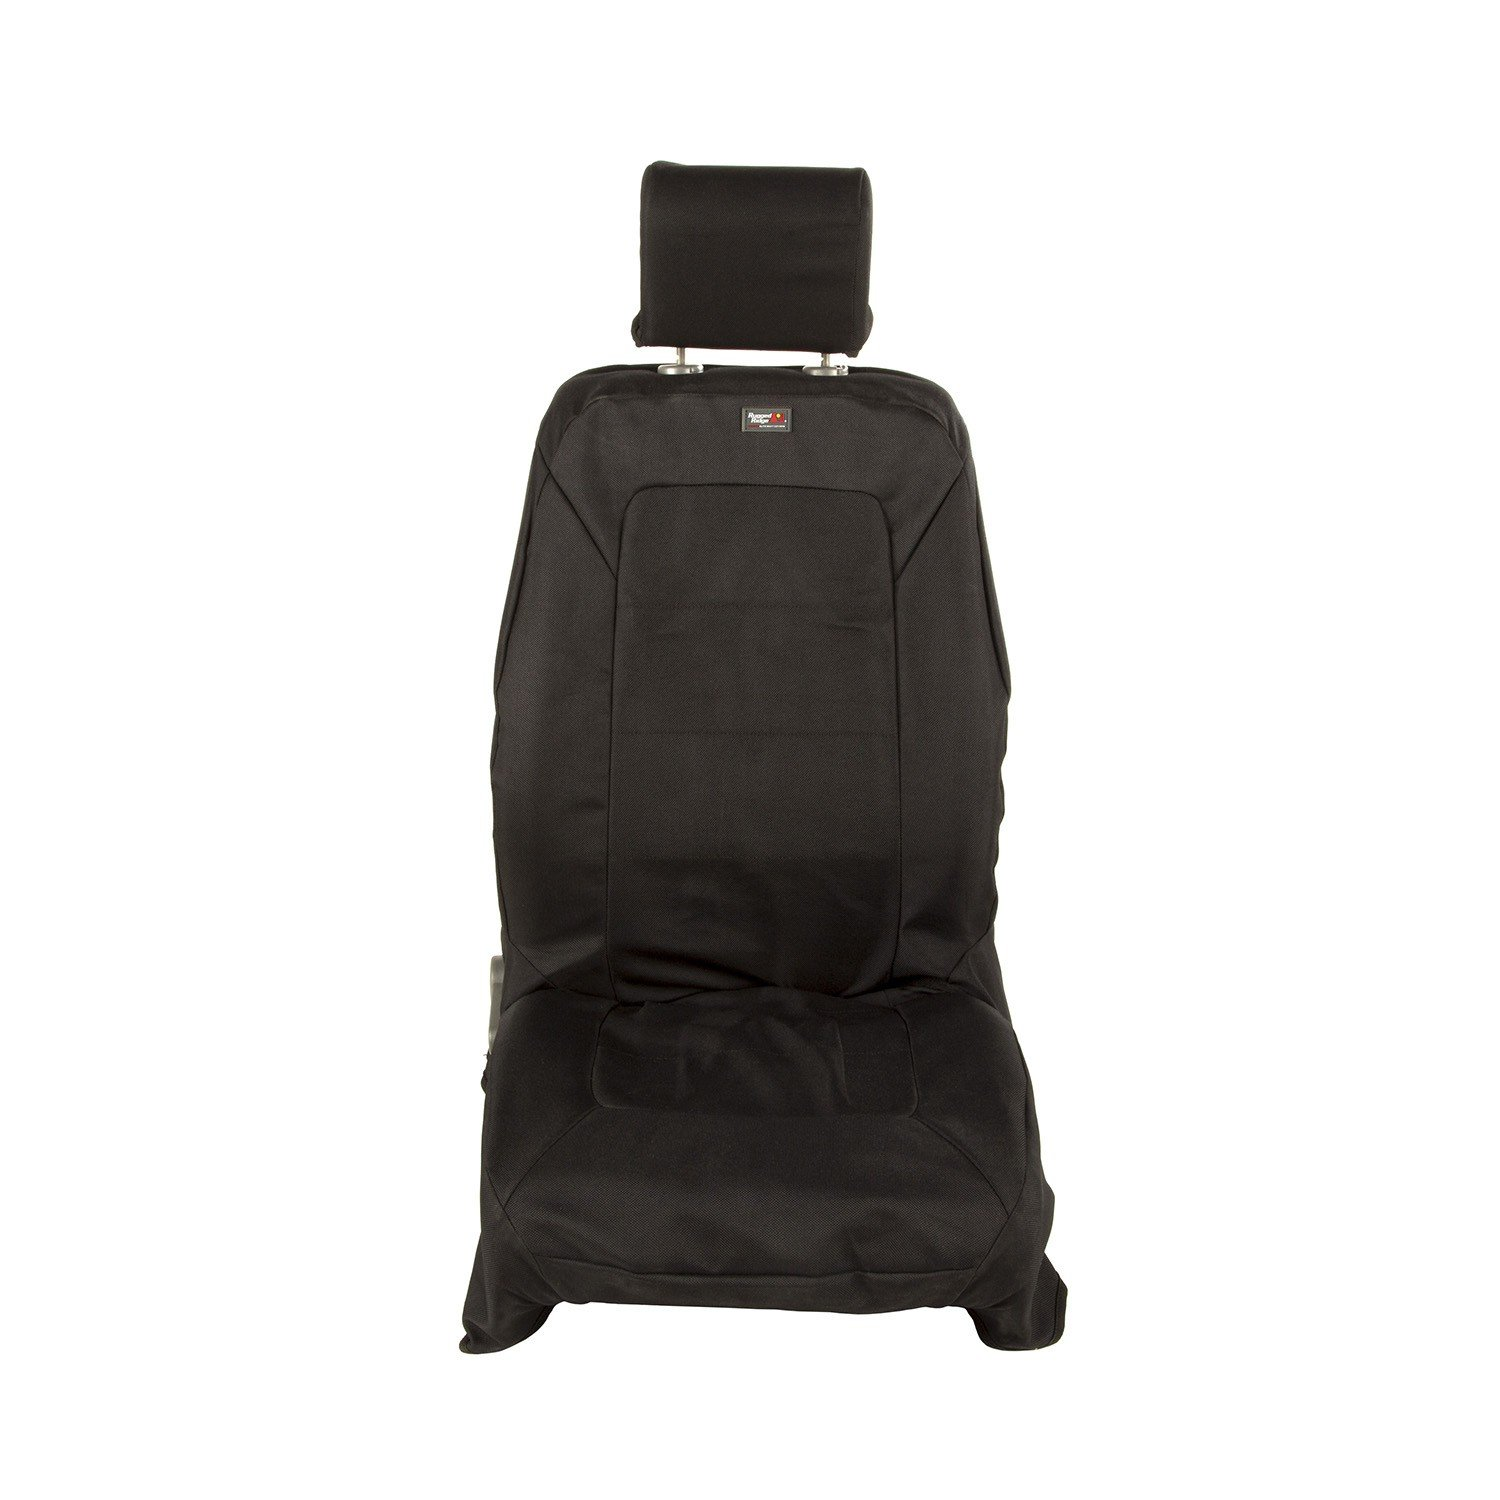 Rugged Ridge 13216.04 Seat Cover Elite Ballistic Heated s,Front; 11-18 JK